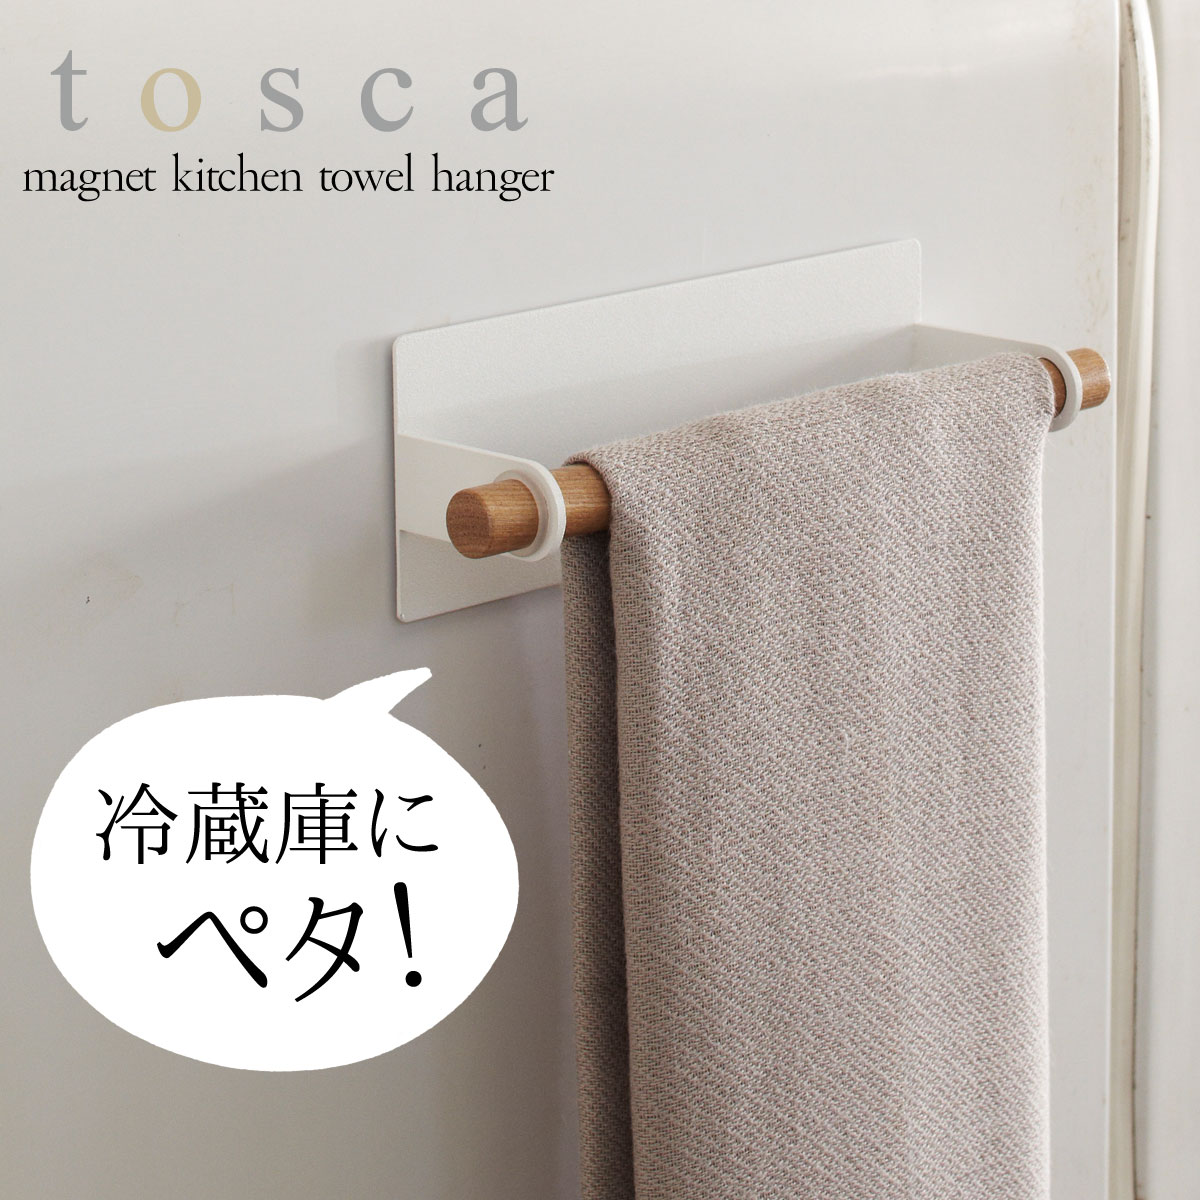 Magnet Kitchen Towel Hanger Tosca Tosca White ...